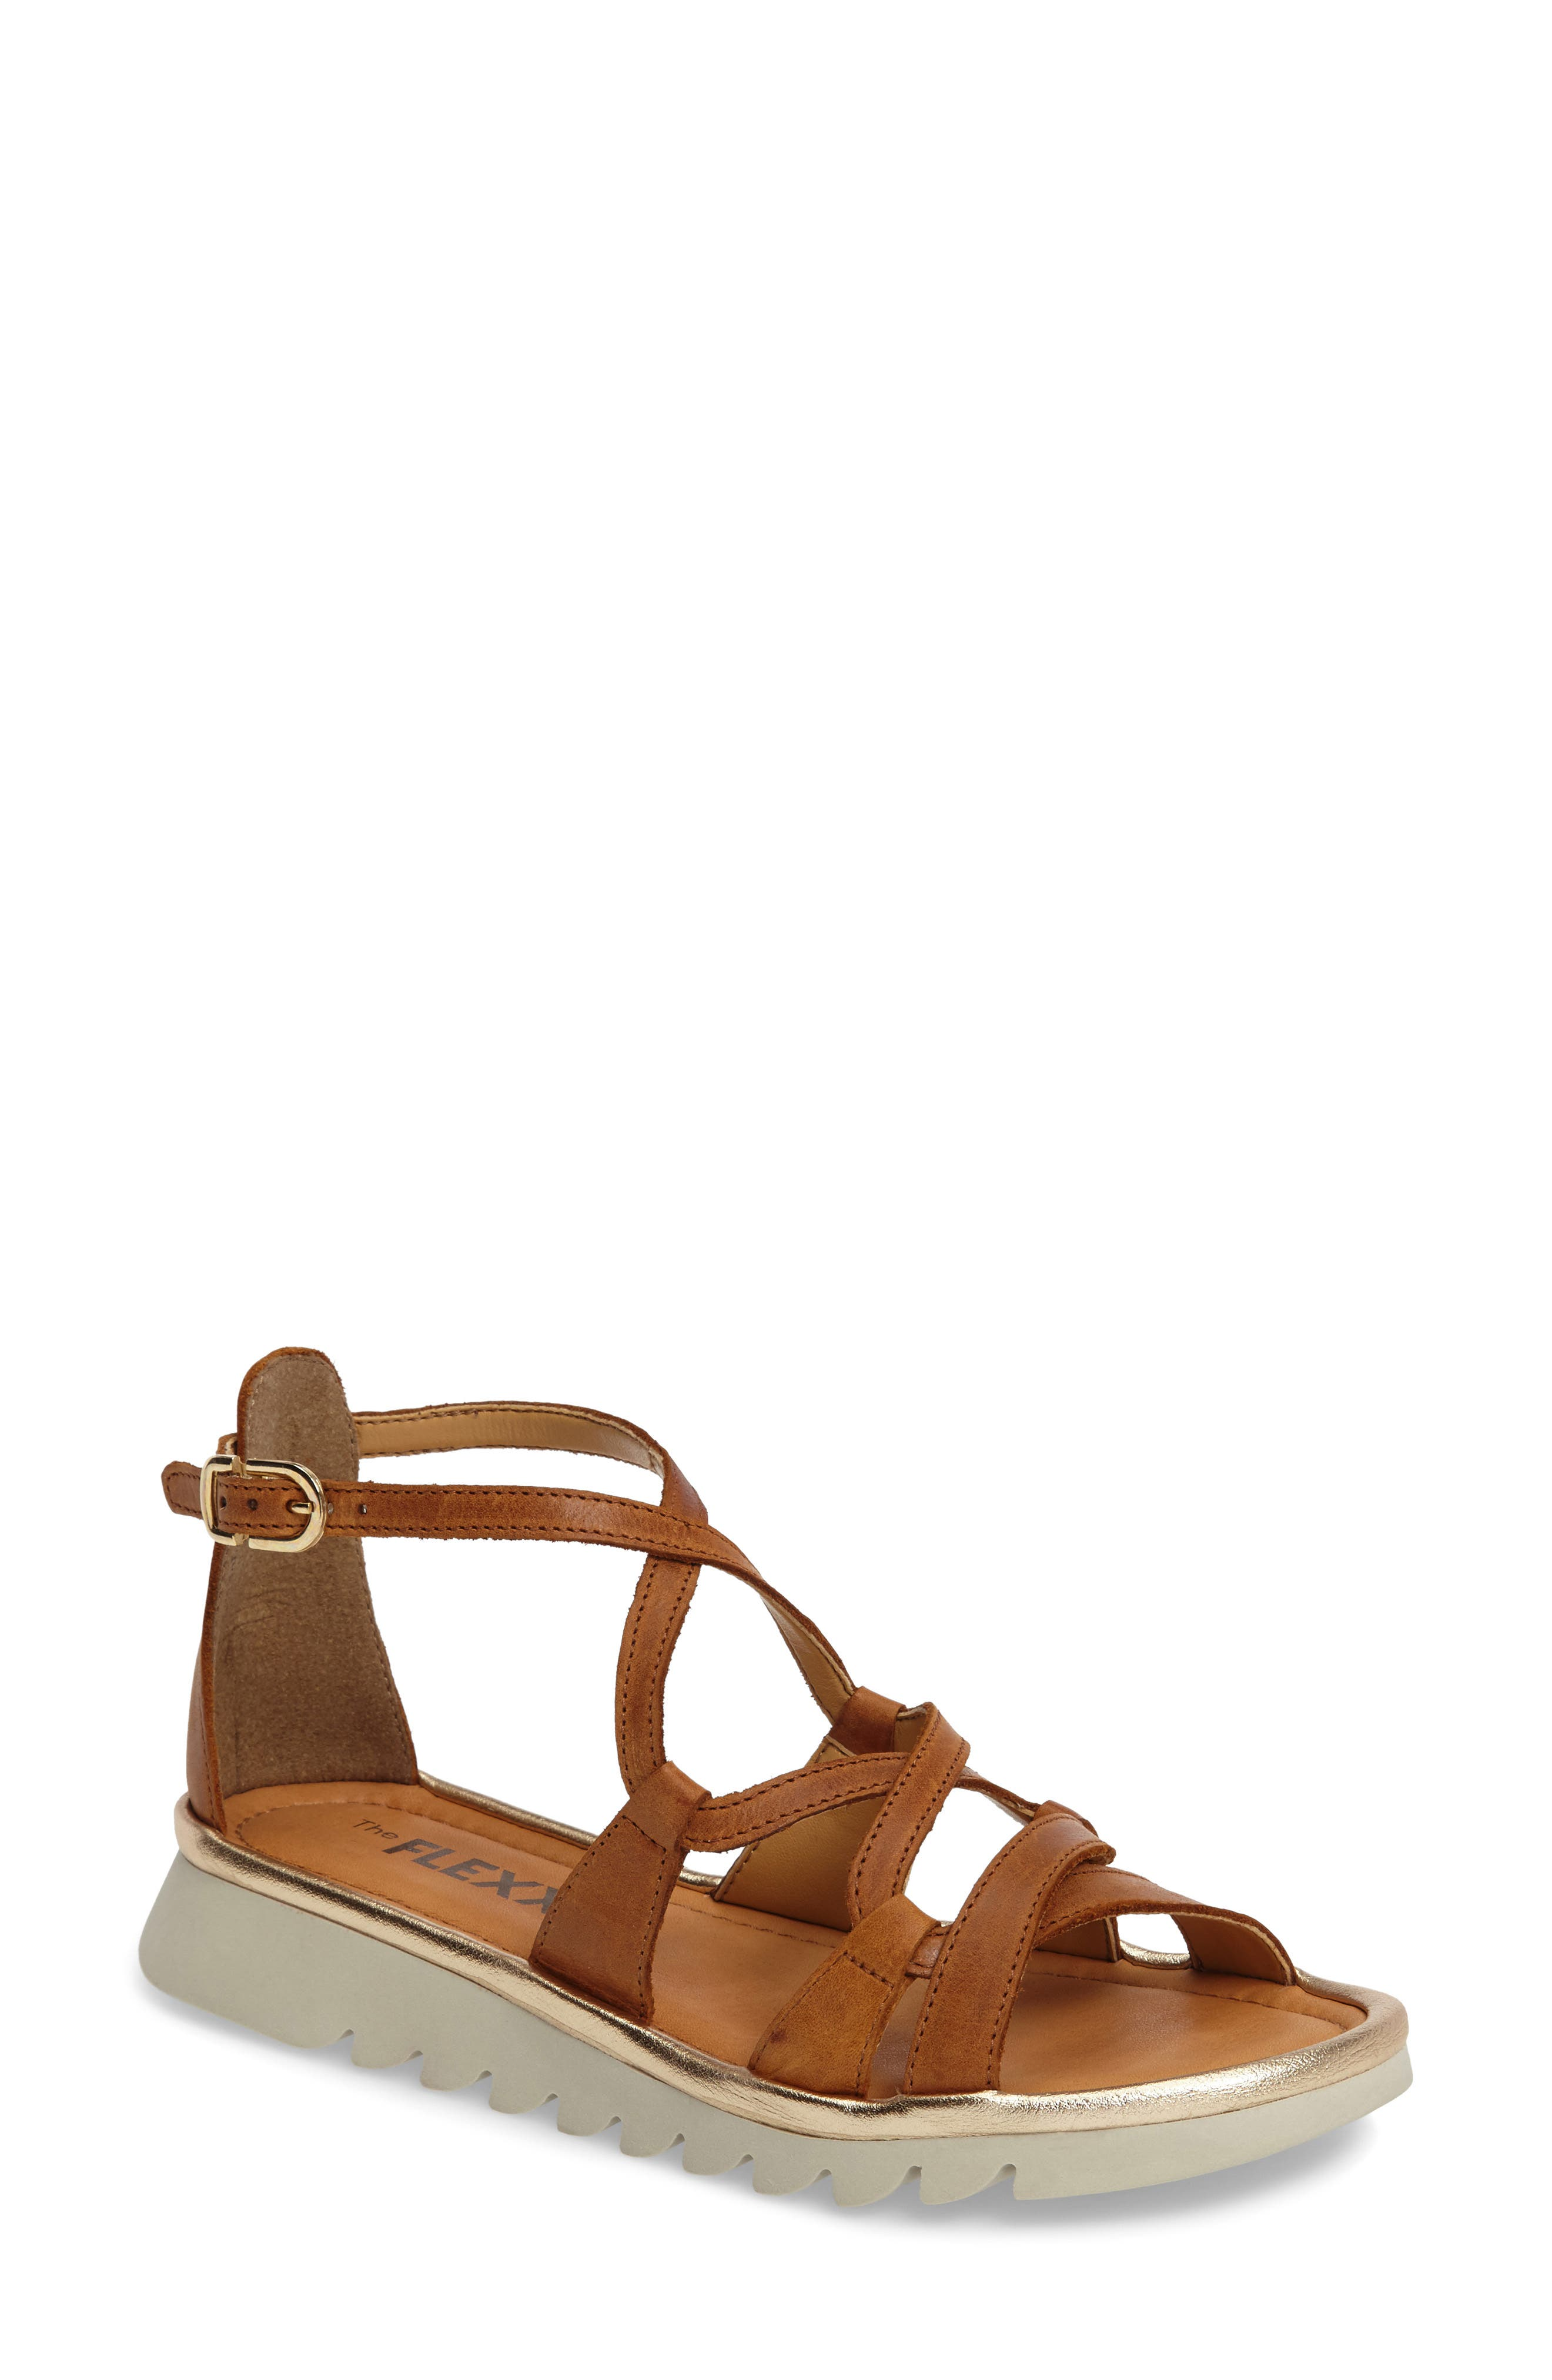 Catch a Wave Sandal,                             Main thumbnail 1, color,                             Cognac Leather